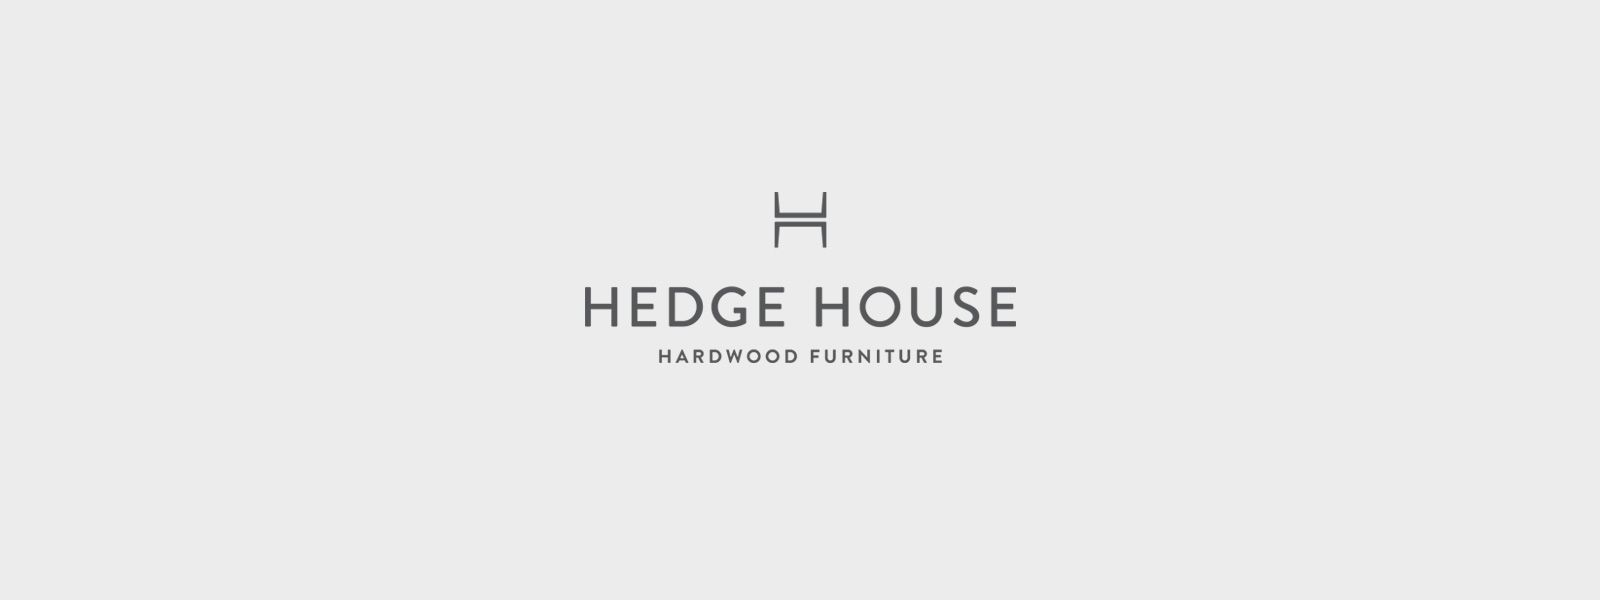 Hedge House Furniture Logo Design by Knoed Creative. Hedge House Furniture Logo Design by Knoed Creative   Hedge House